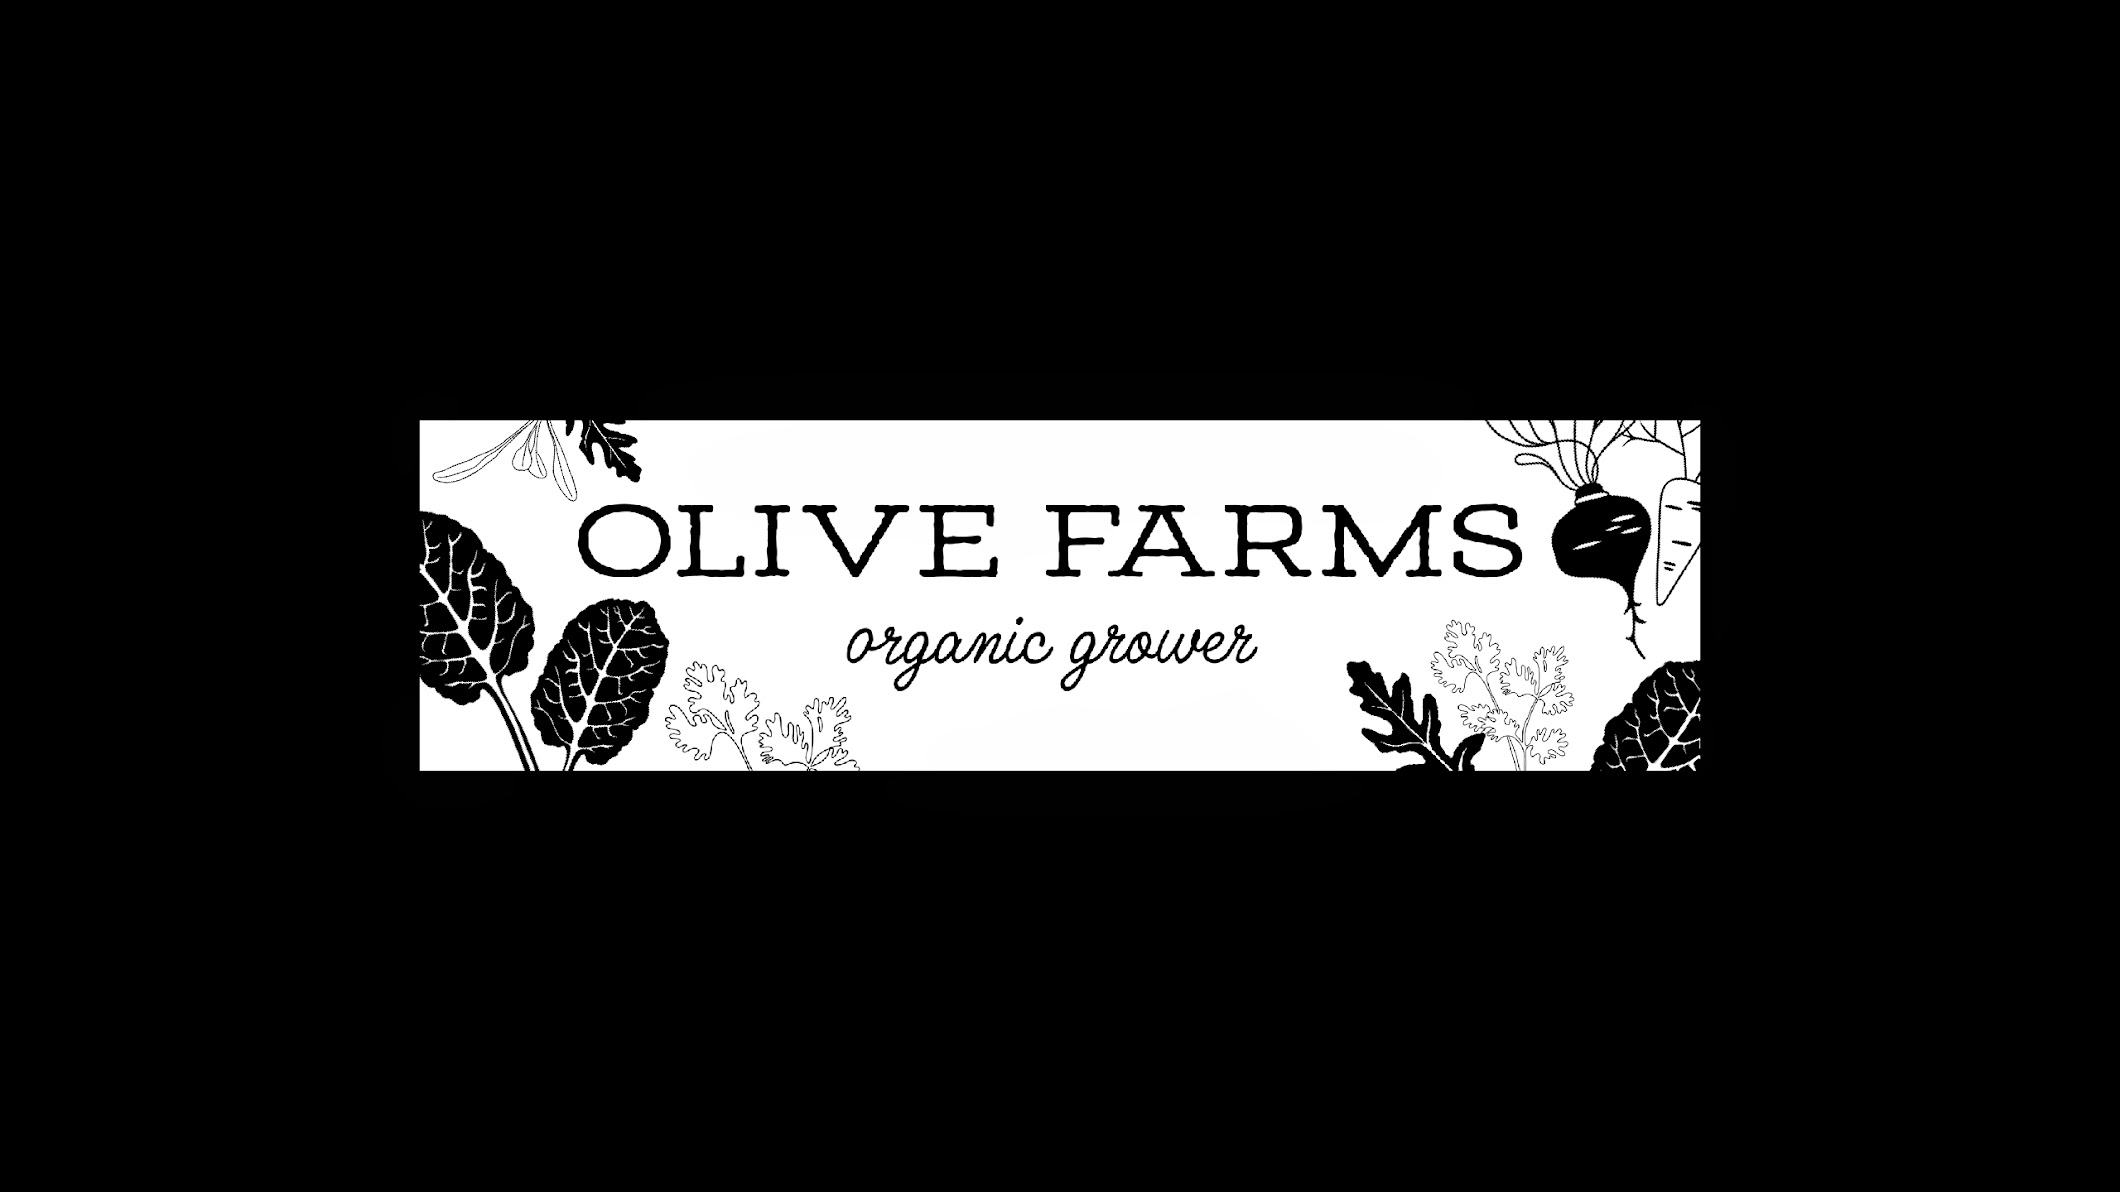 Davis Family Olive Farms